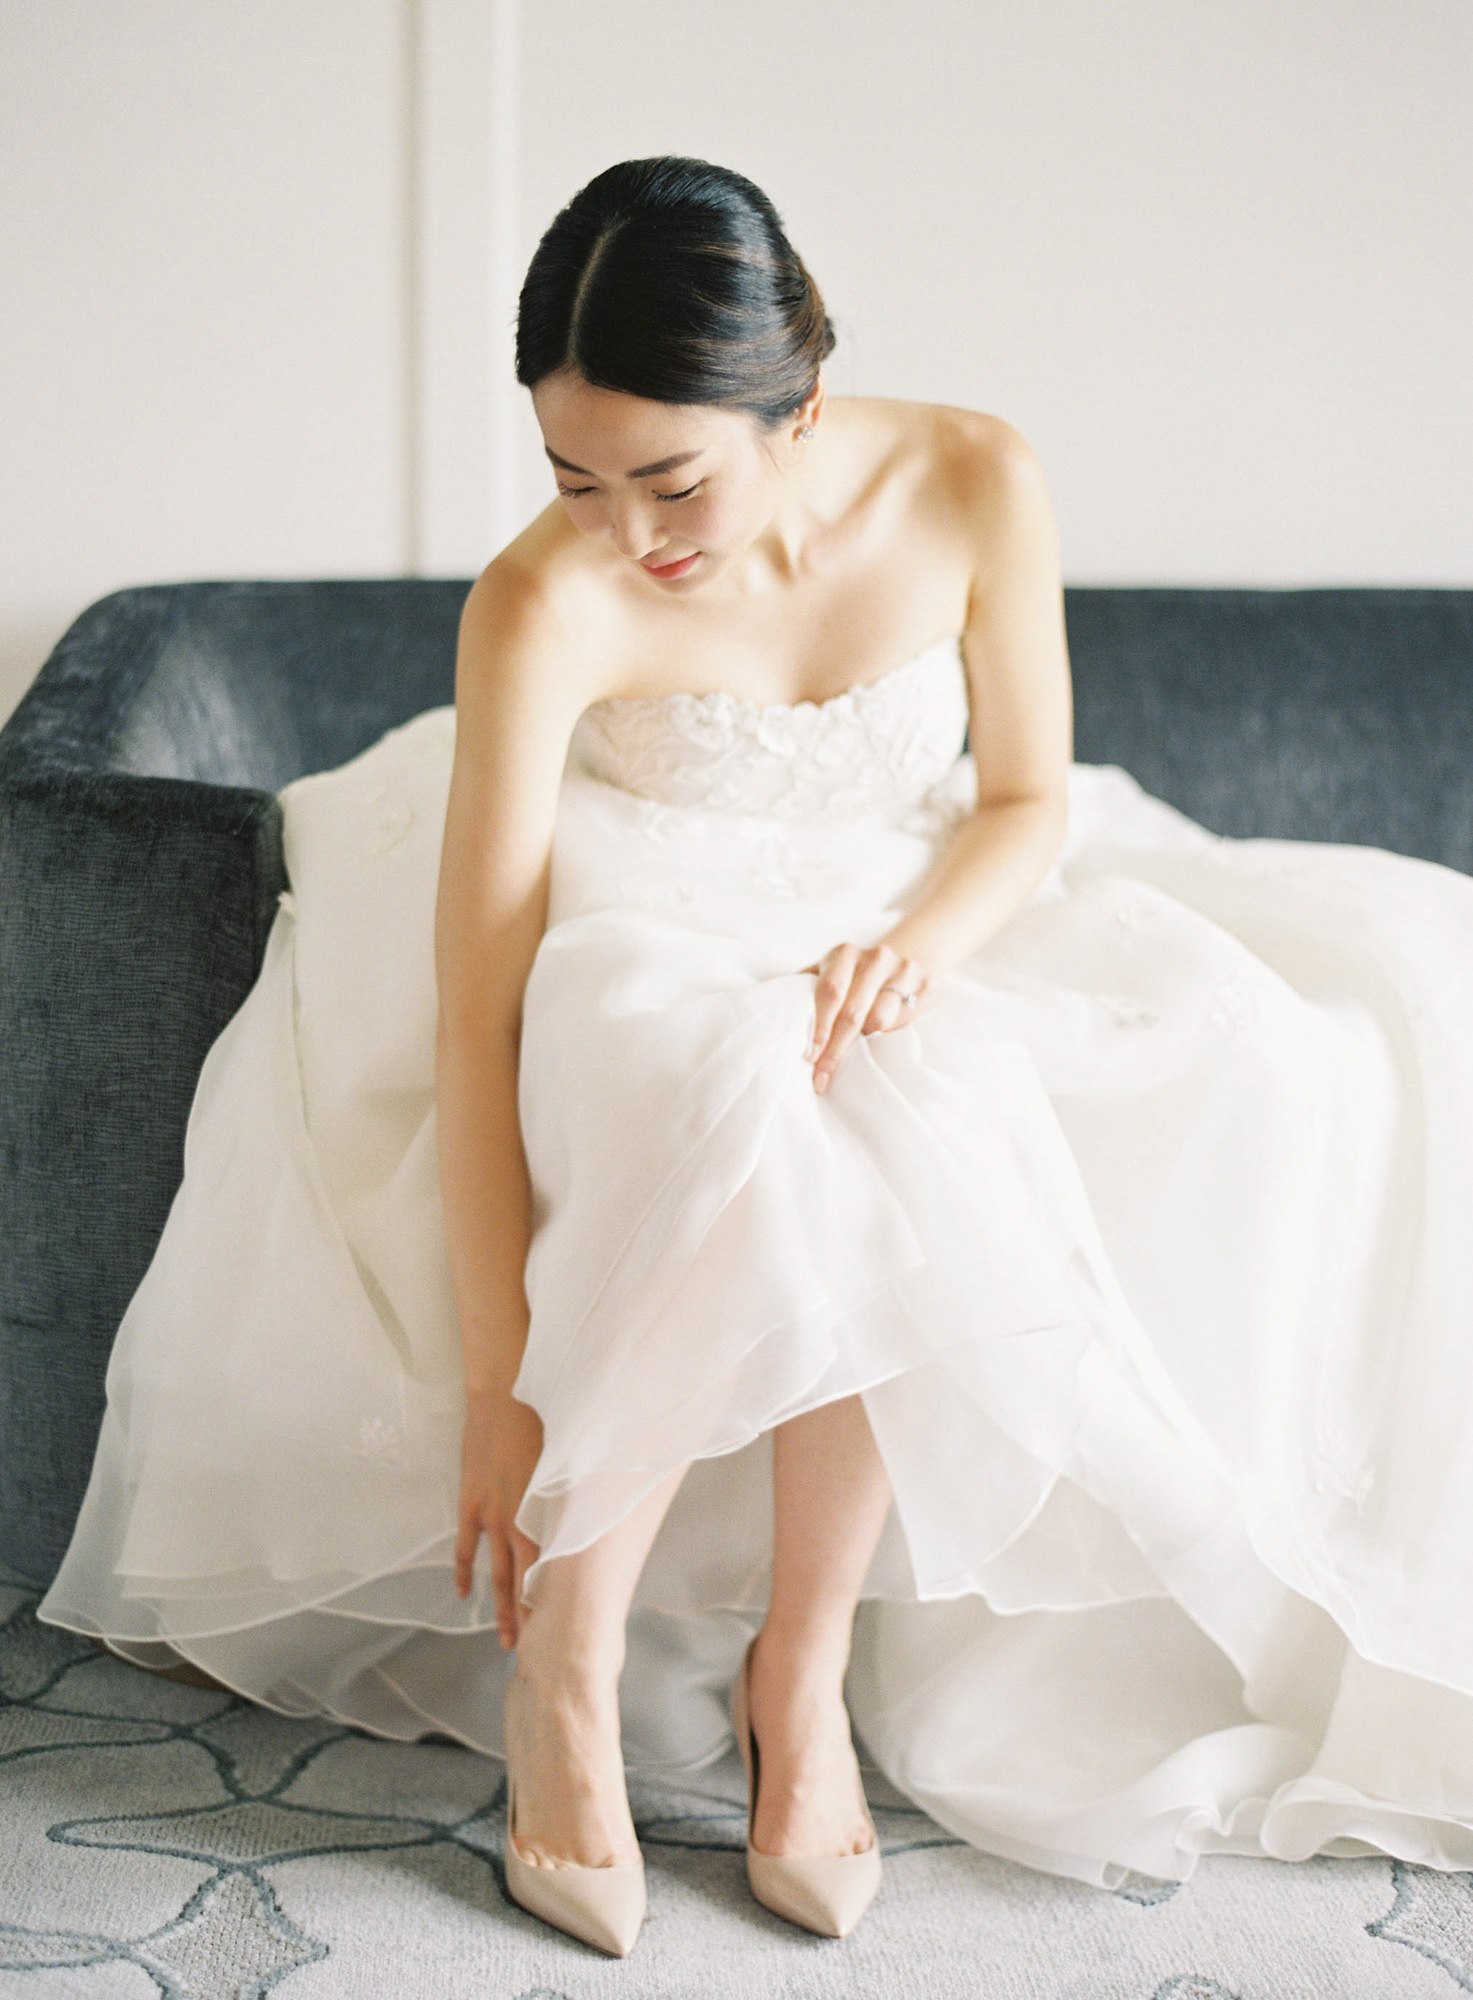 Bride in strapless lace wedding dress putting on nude shoes Jen Huang Los Angeles wedding photographer